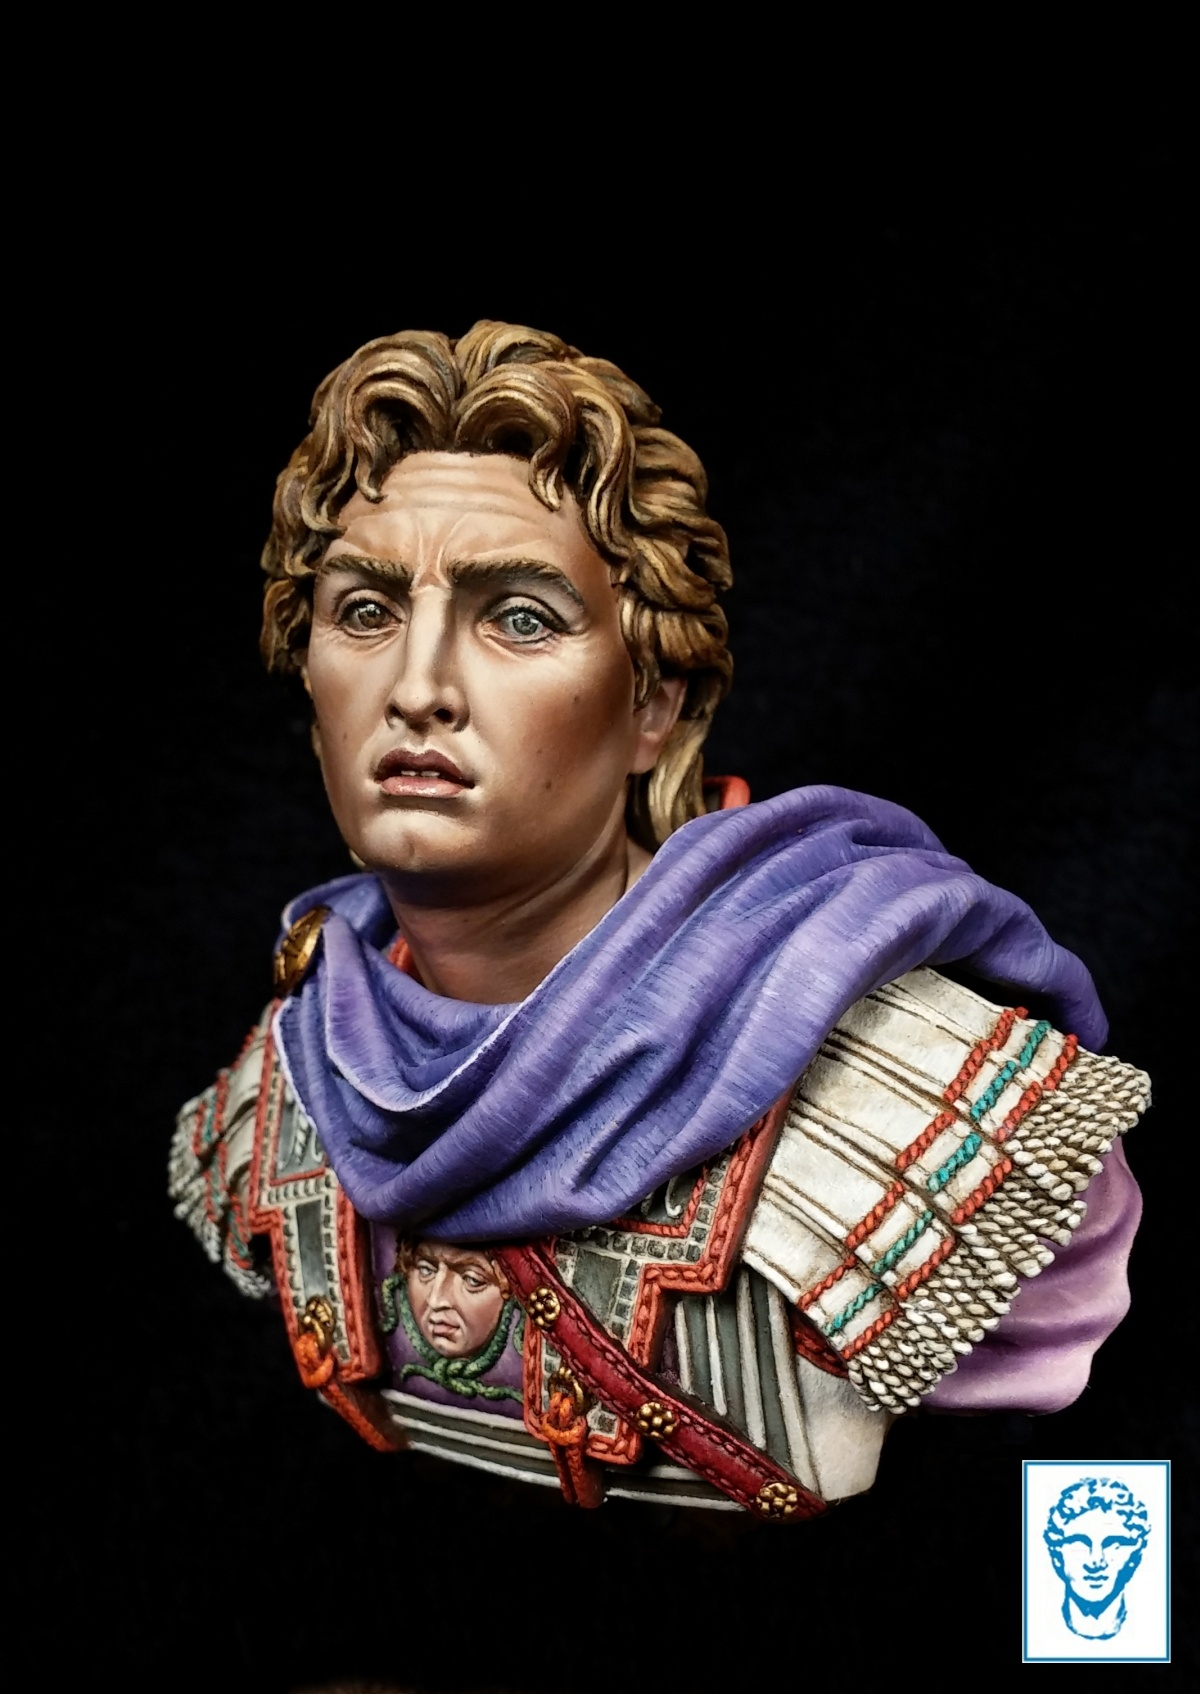 Keep Hope Alive >> Alexander the Great ( ALEXANDROS MODELS) by Alexandre_Cortina_Bonastre · Putty&Paint